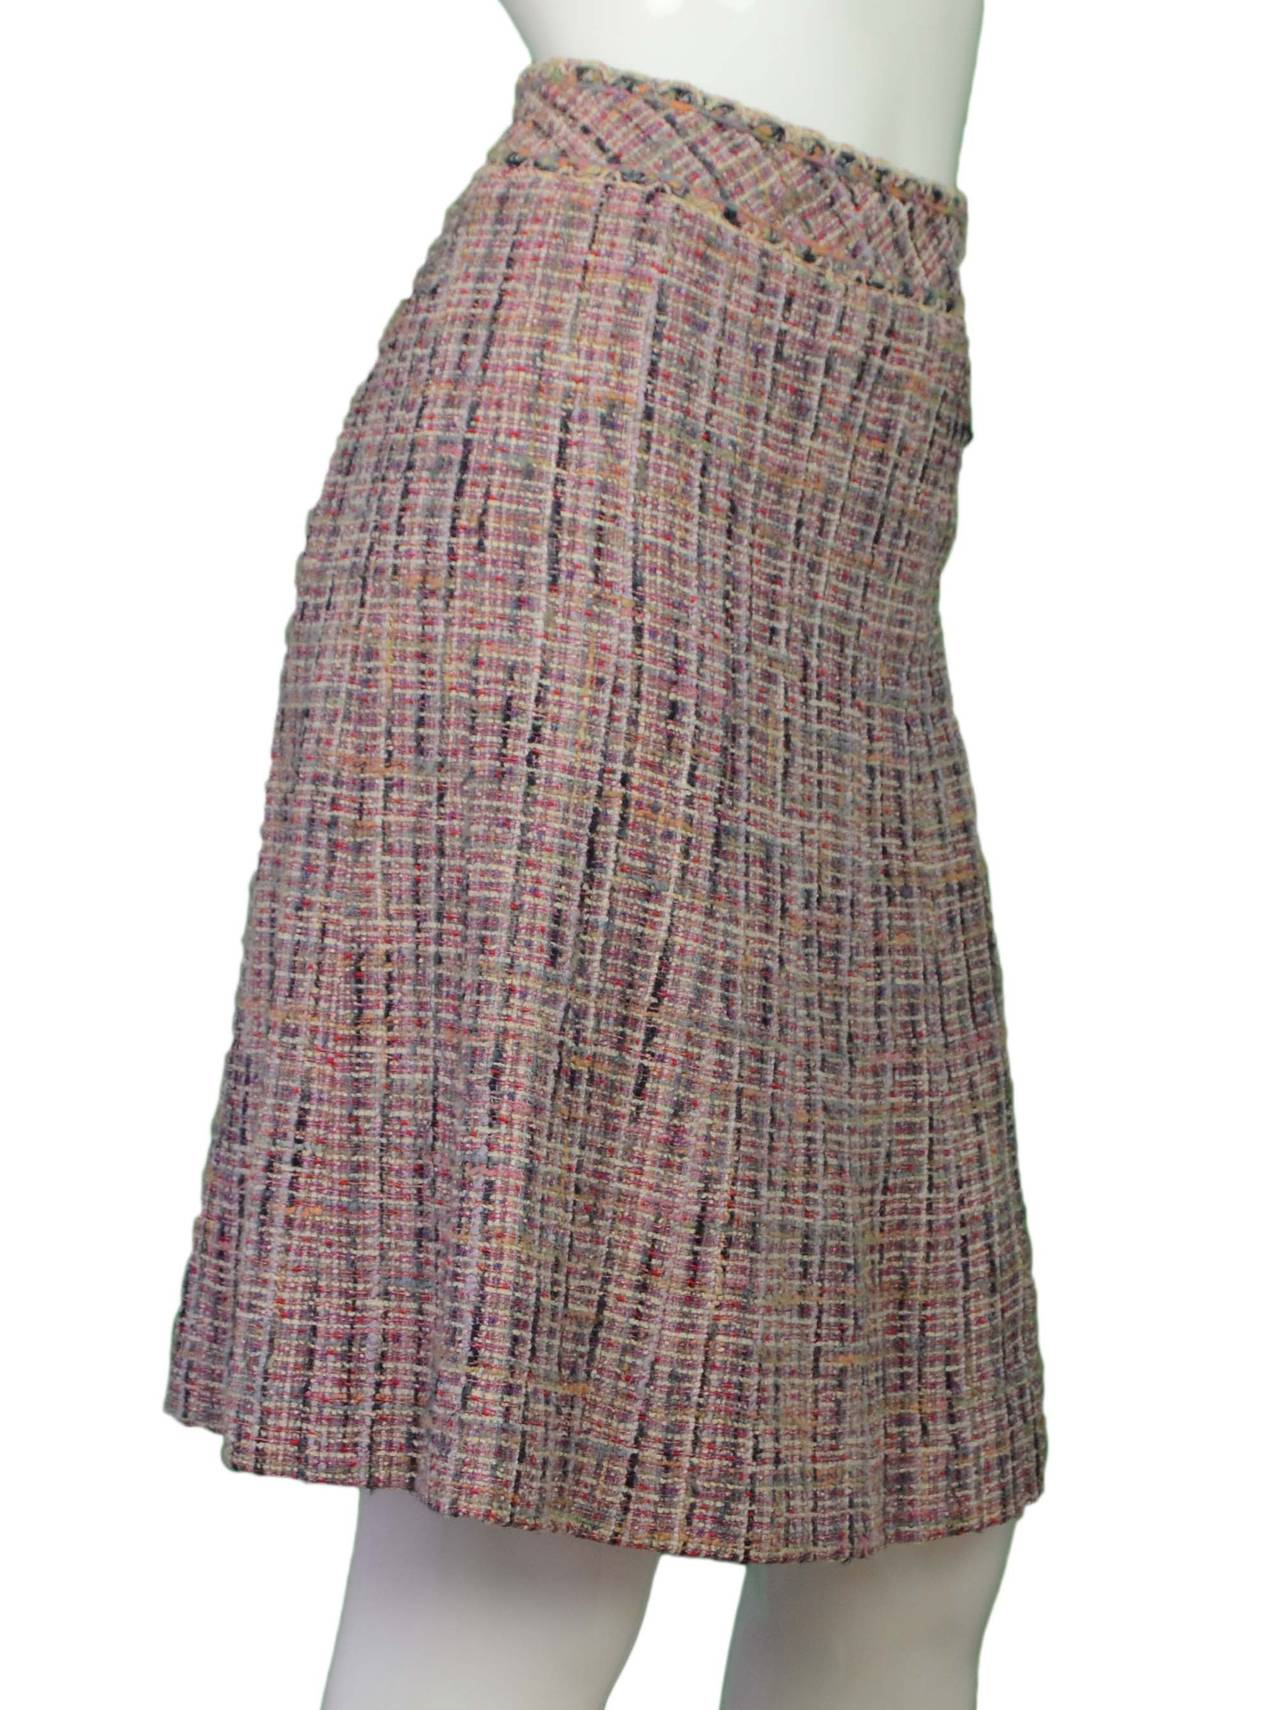 Chanel Multi-Colored Tweed A-Line Skirt  Features small silvertone cc pendant on front left hip of skirt Made in: France Year of Production: 2003 Color: Multi-colored Composition: 58% cotton, 18% wool, 15% silk, 6% rayon, and 3% nylon Lining: